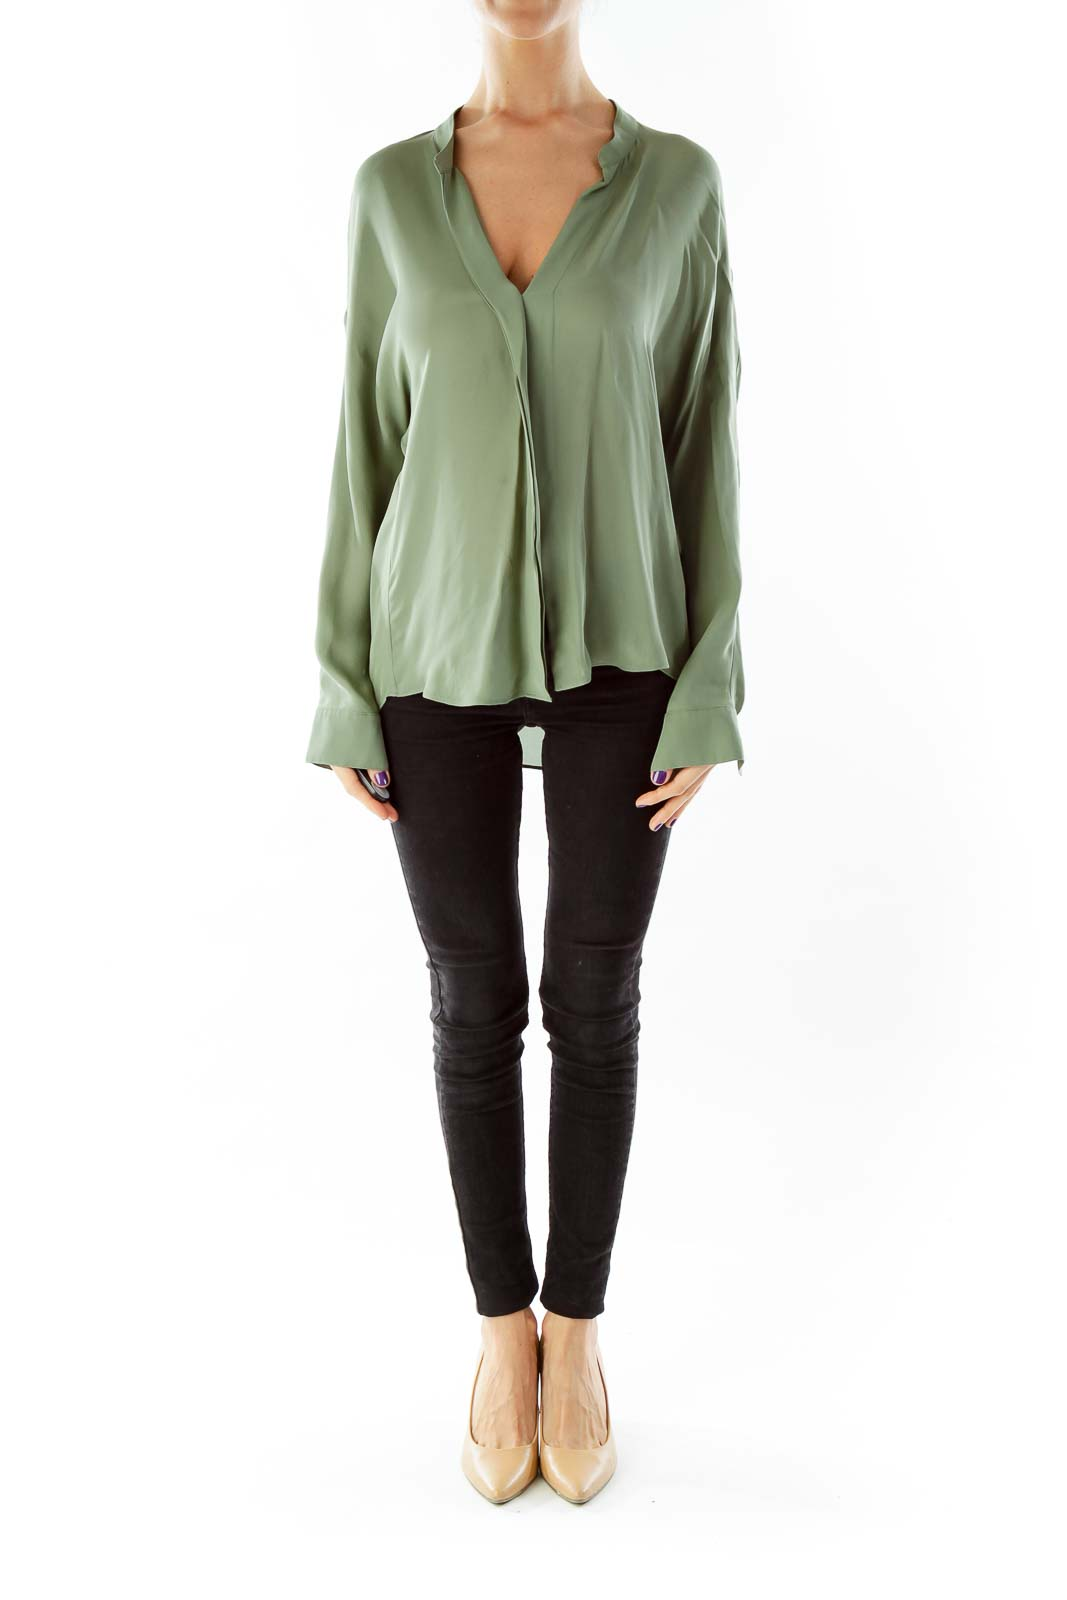 f8a6f3c7ea593 HomeClothingTopsBlousesOlive Green Silk V-Neck Blouse. Previous. Wristwatch  by Versace. Wristwatch by Versace. Wristwatch by Versace